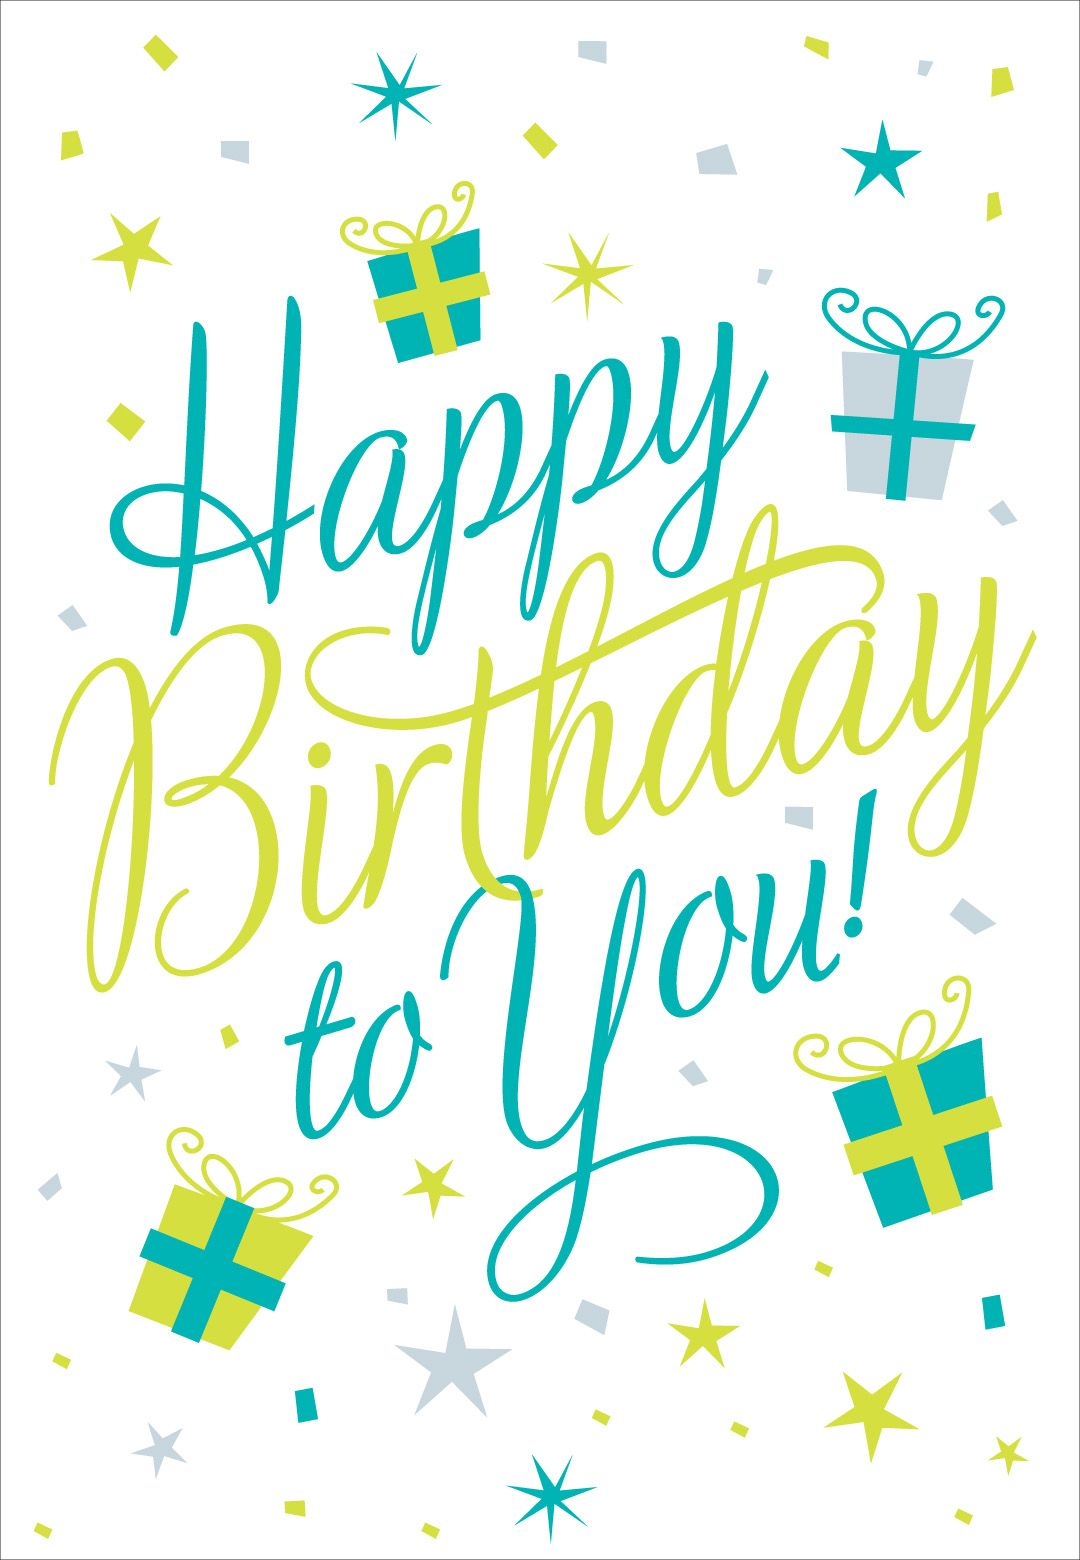 Happy Birthday To You Birthday Card Free Greetings Island Happy Birthday Cards Printable Happy Birthday Greetings Happy Birthday Cards